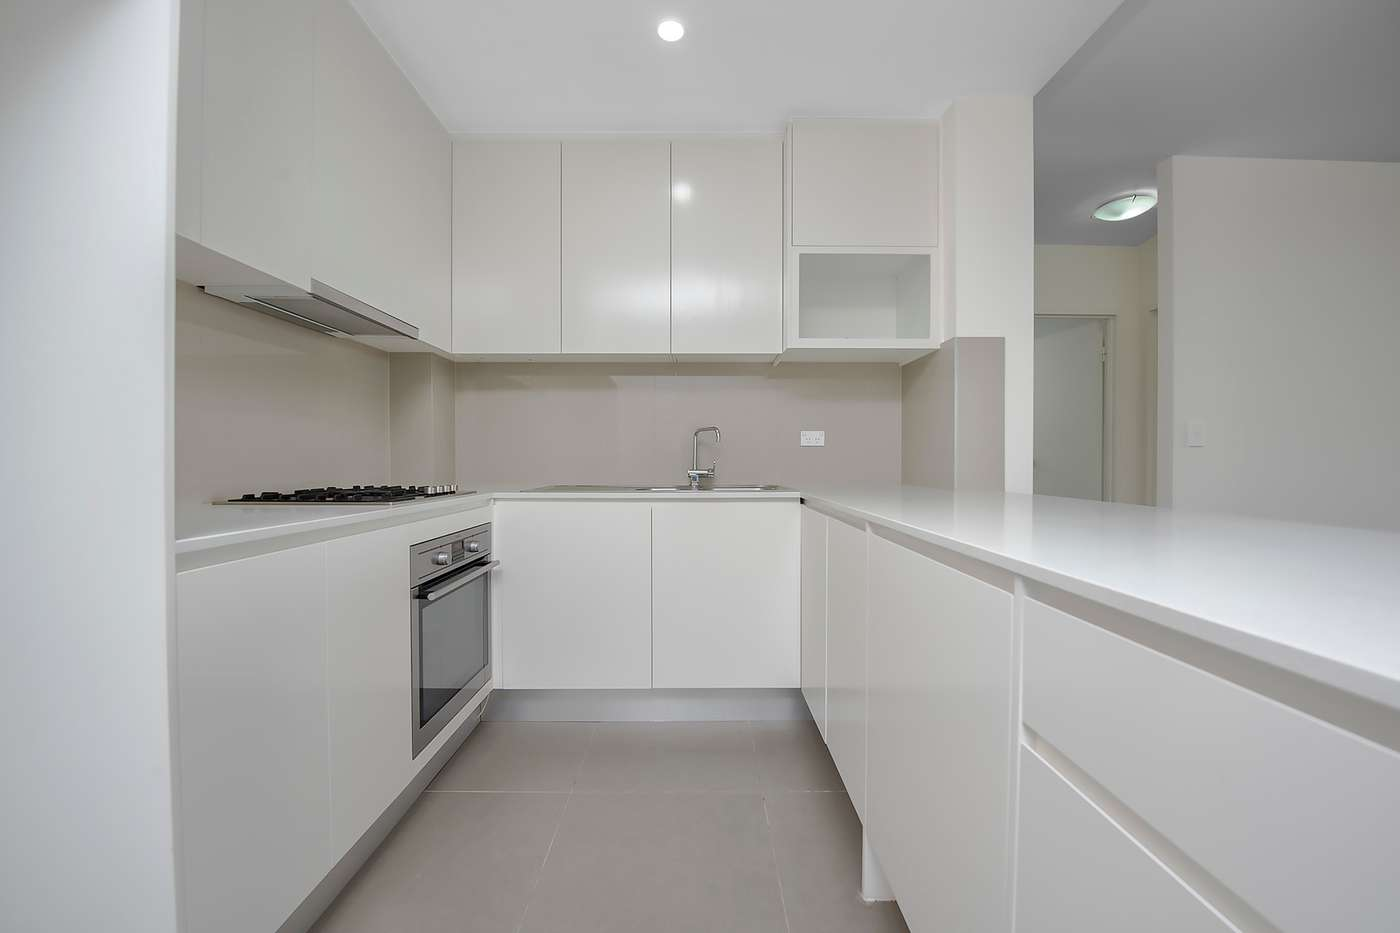 Main view of Homely apartment listing, 48/2-10 Garnet Street, Rockdale, NSW 2216